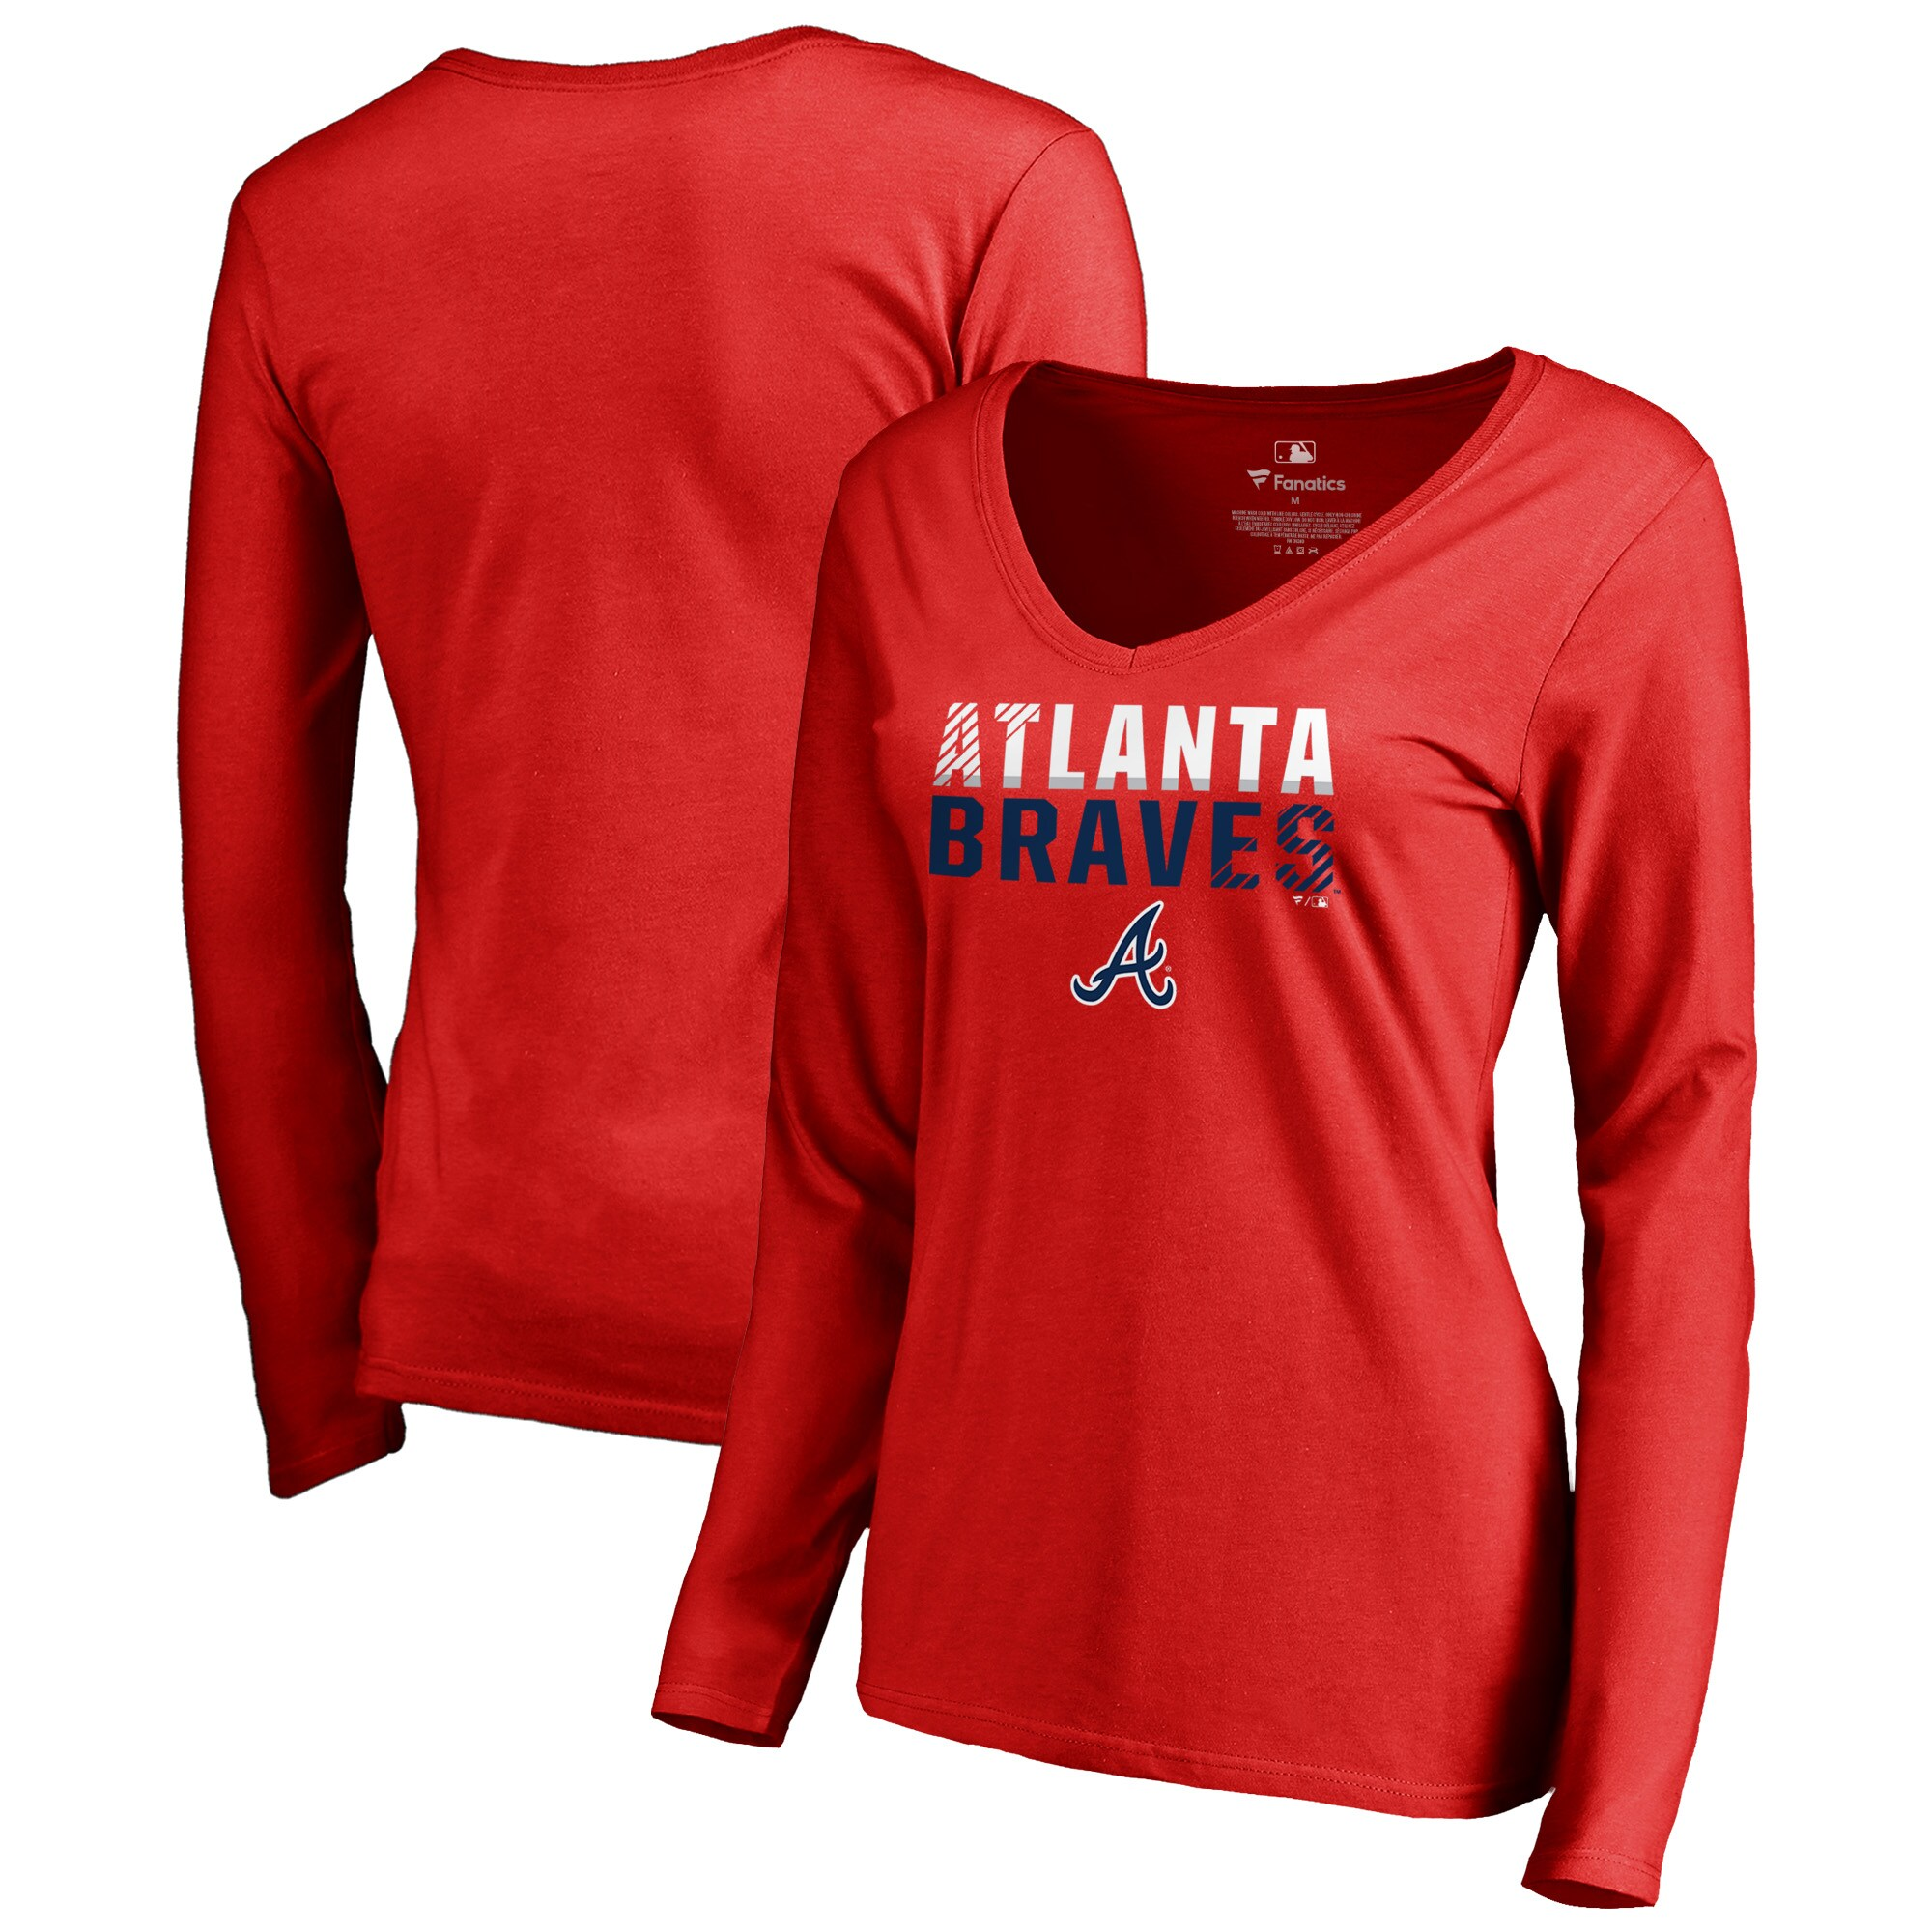 Atlanta Braves Fanatics Branded Women's Fade Out V-Neck Long Sleeve T-Shirt - Red